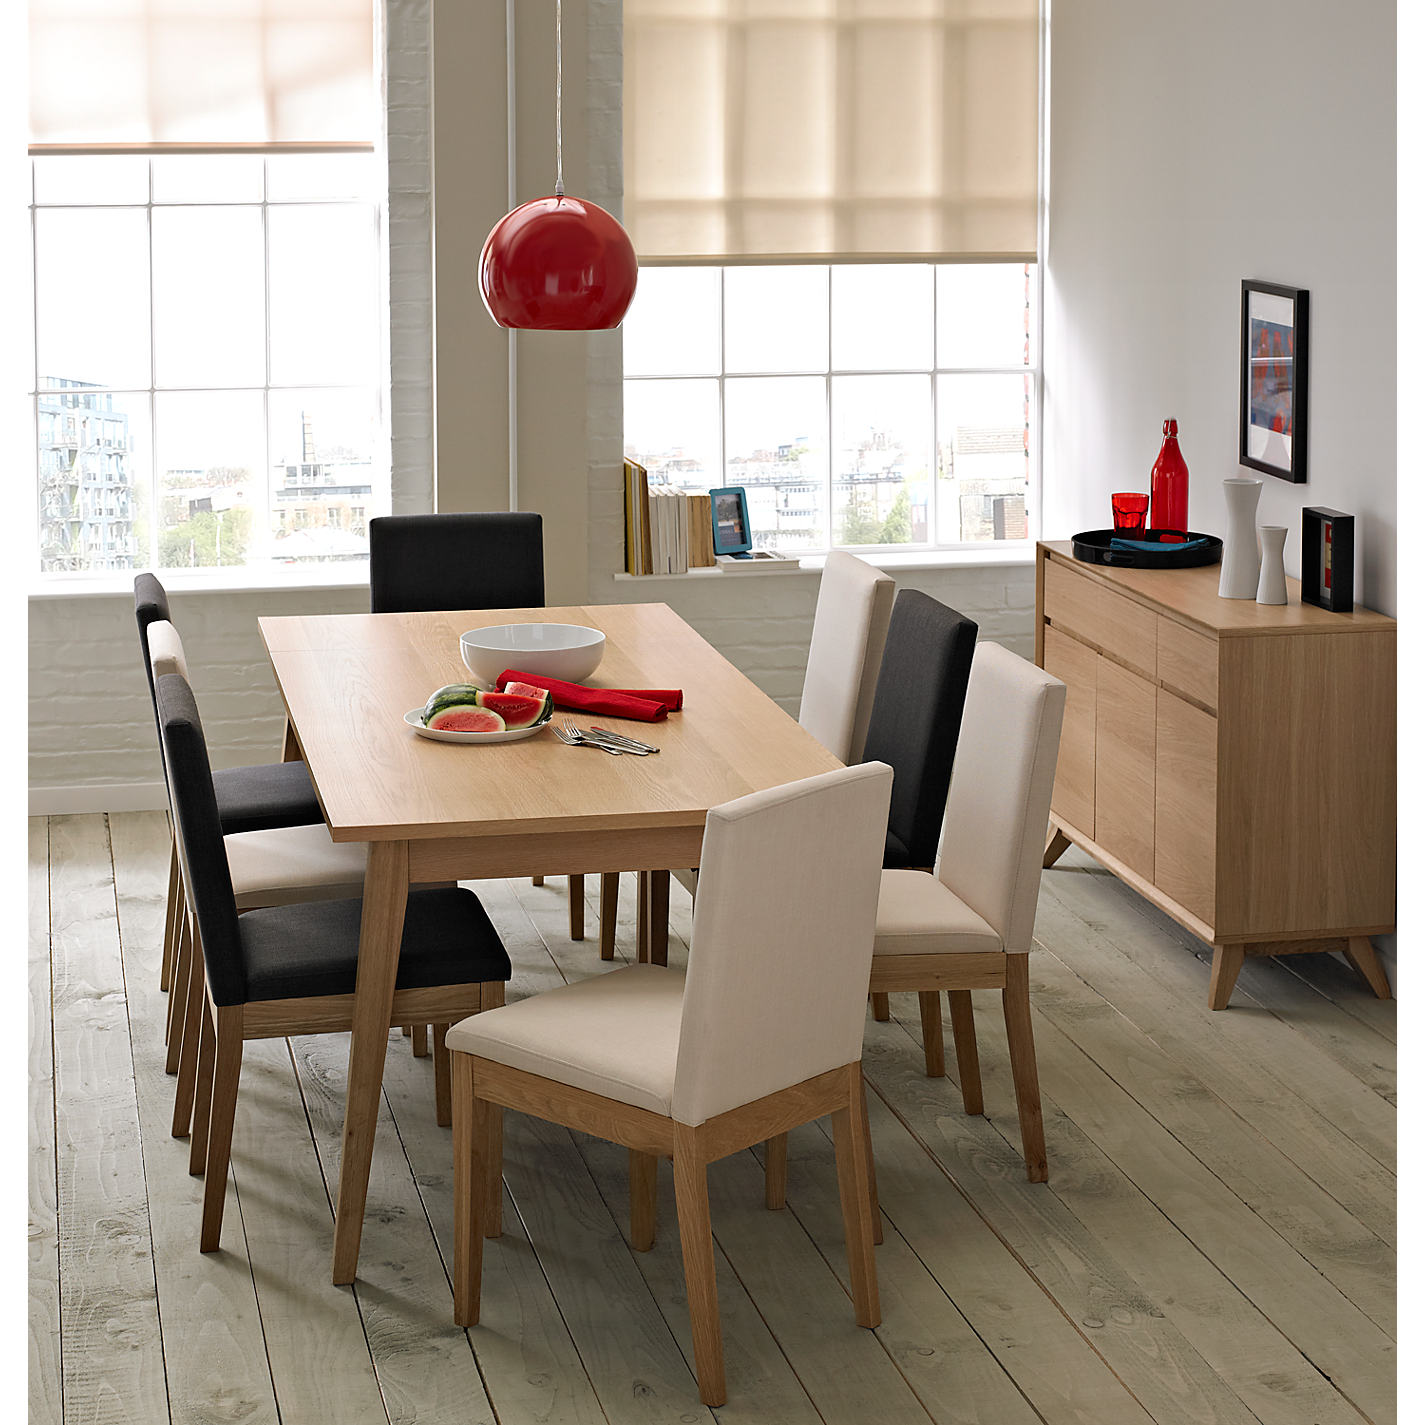 Dining Room Table & Chairs | Shop for Table & Chairs at John Lewis